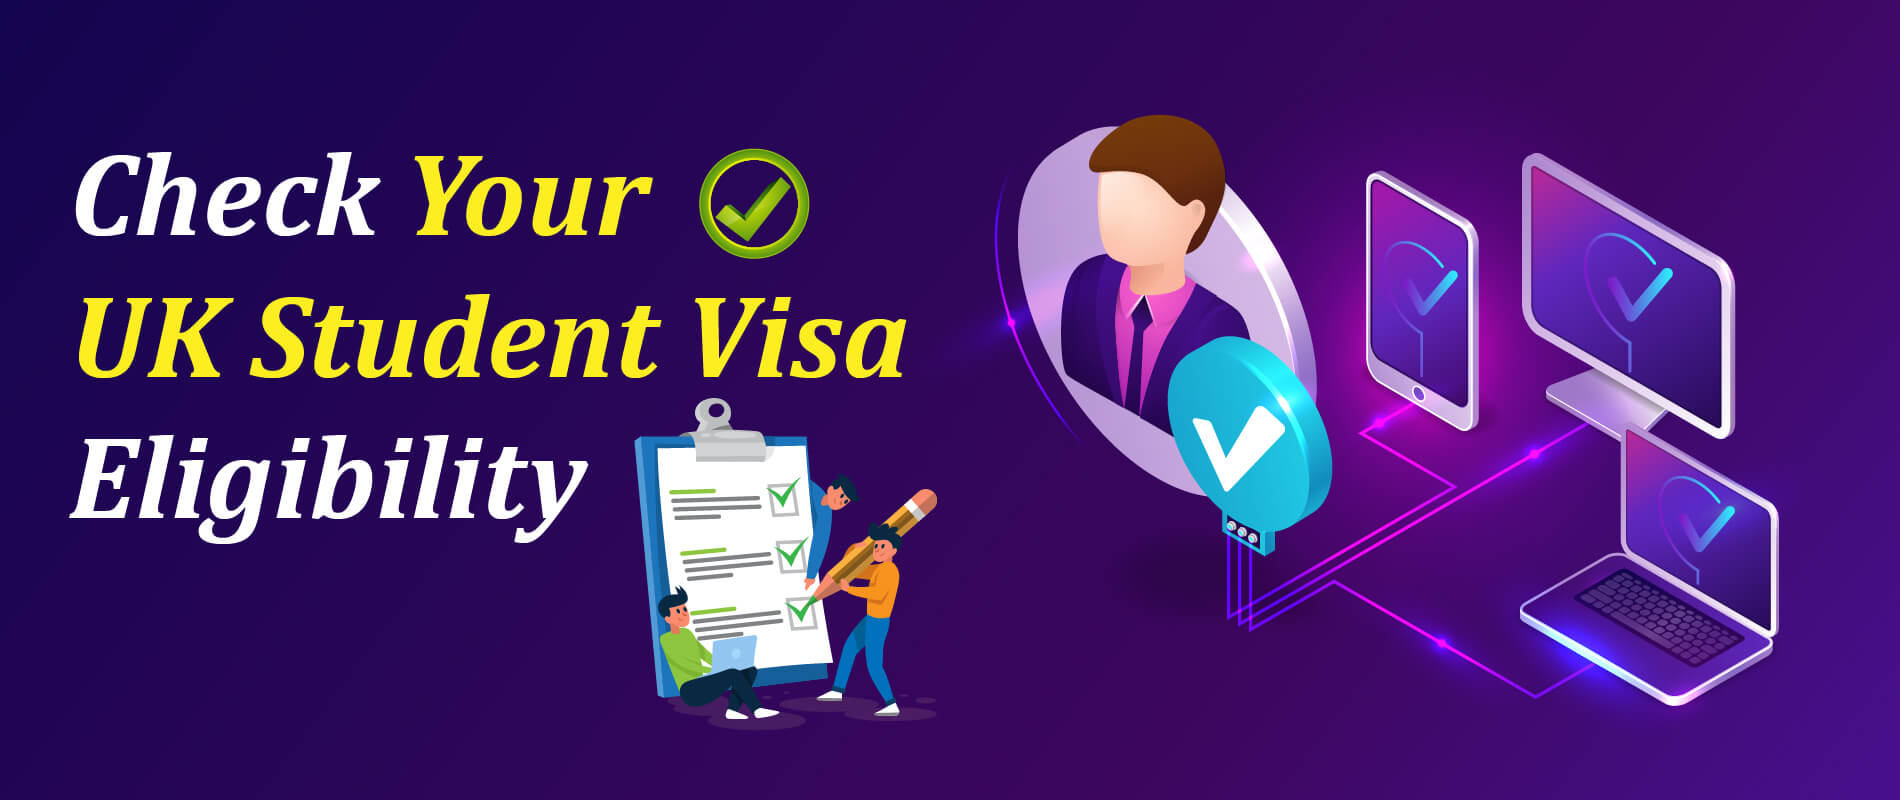 Check UK Student Visa Eligibility Instantly - Edge International Vadodara